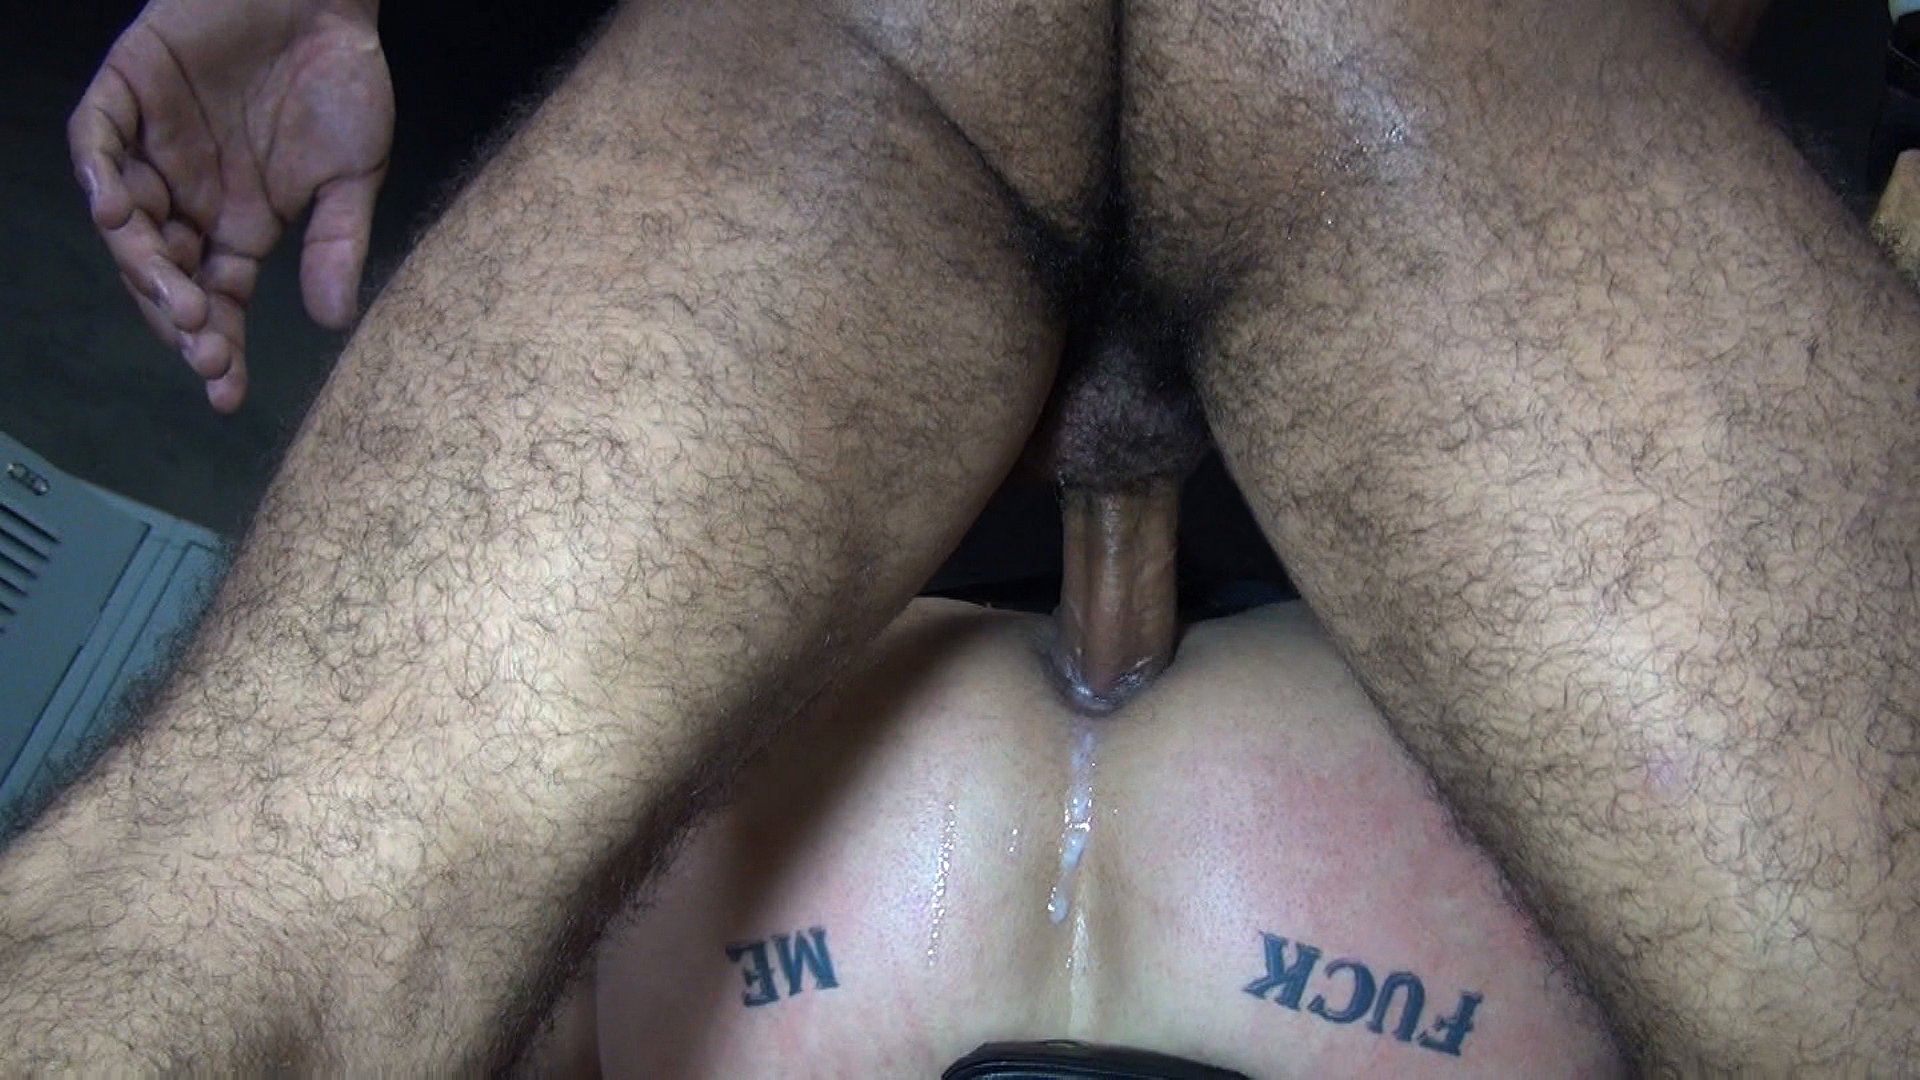 Ace fucked two guys